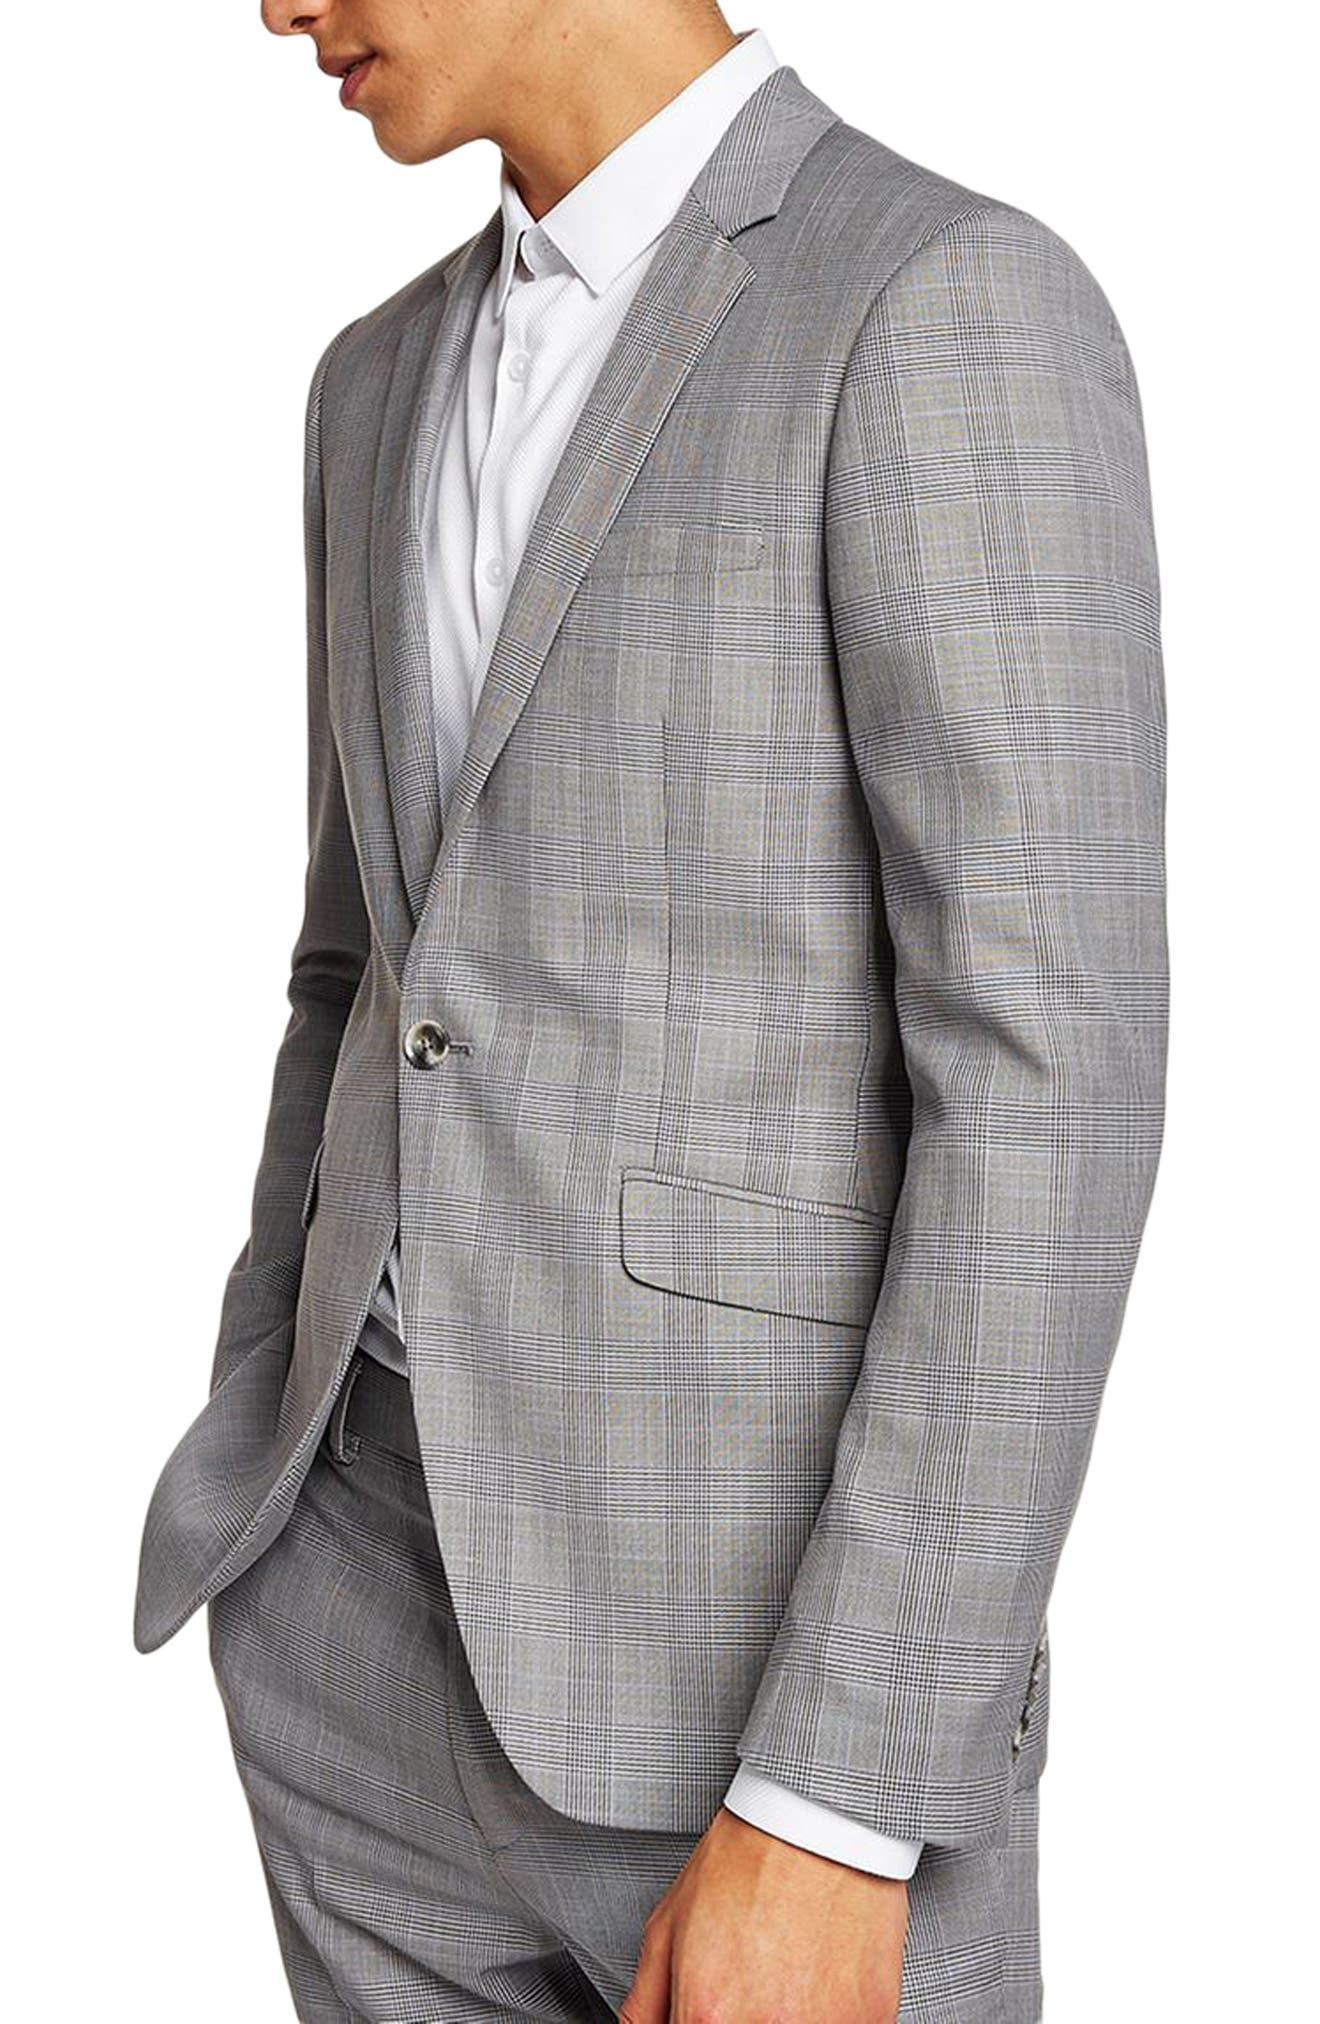 Skinny Fit Check Suit Jacket,                             Main thumbnail 1, color,                             020